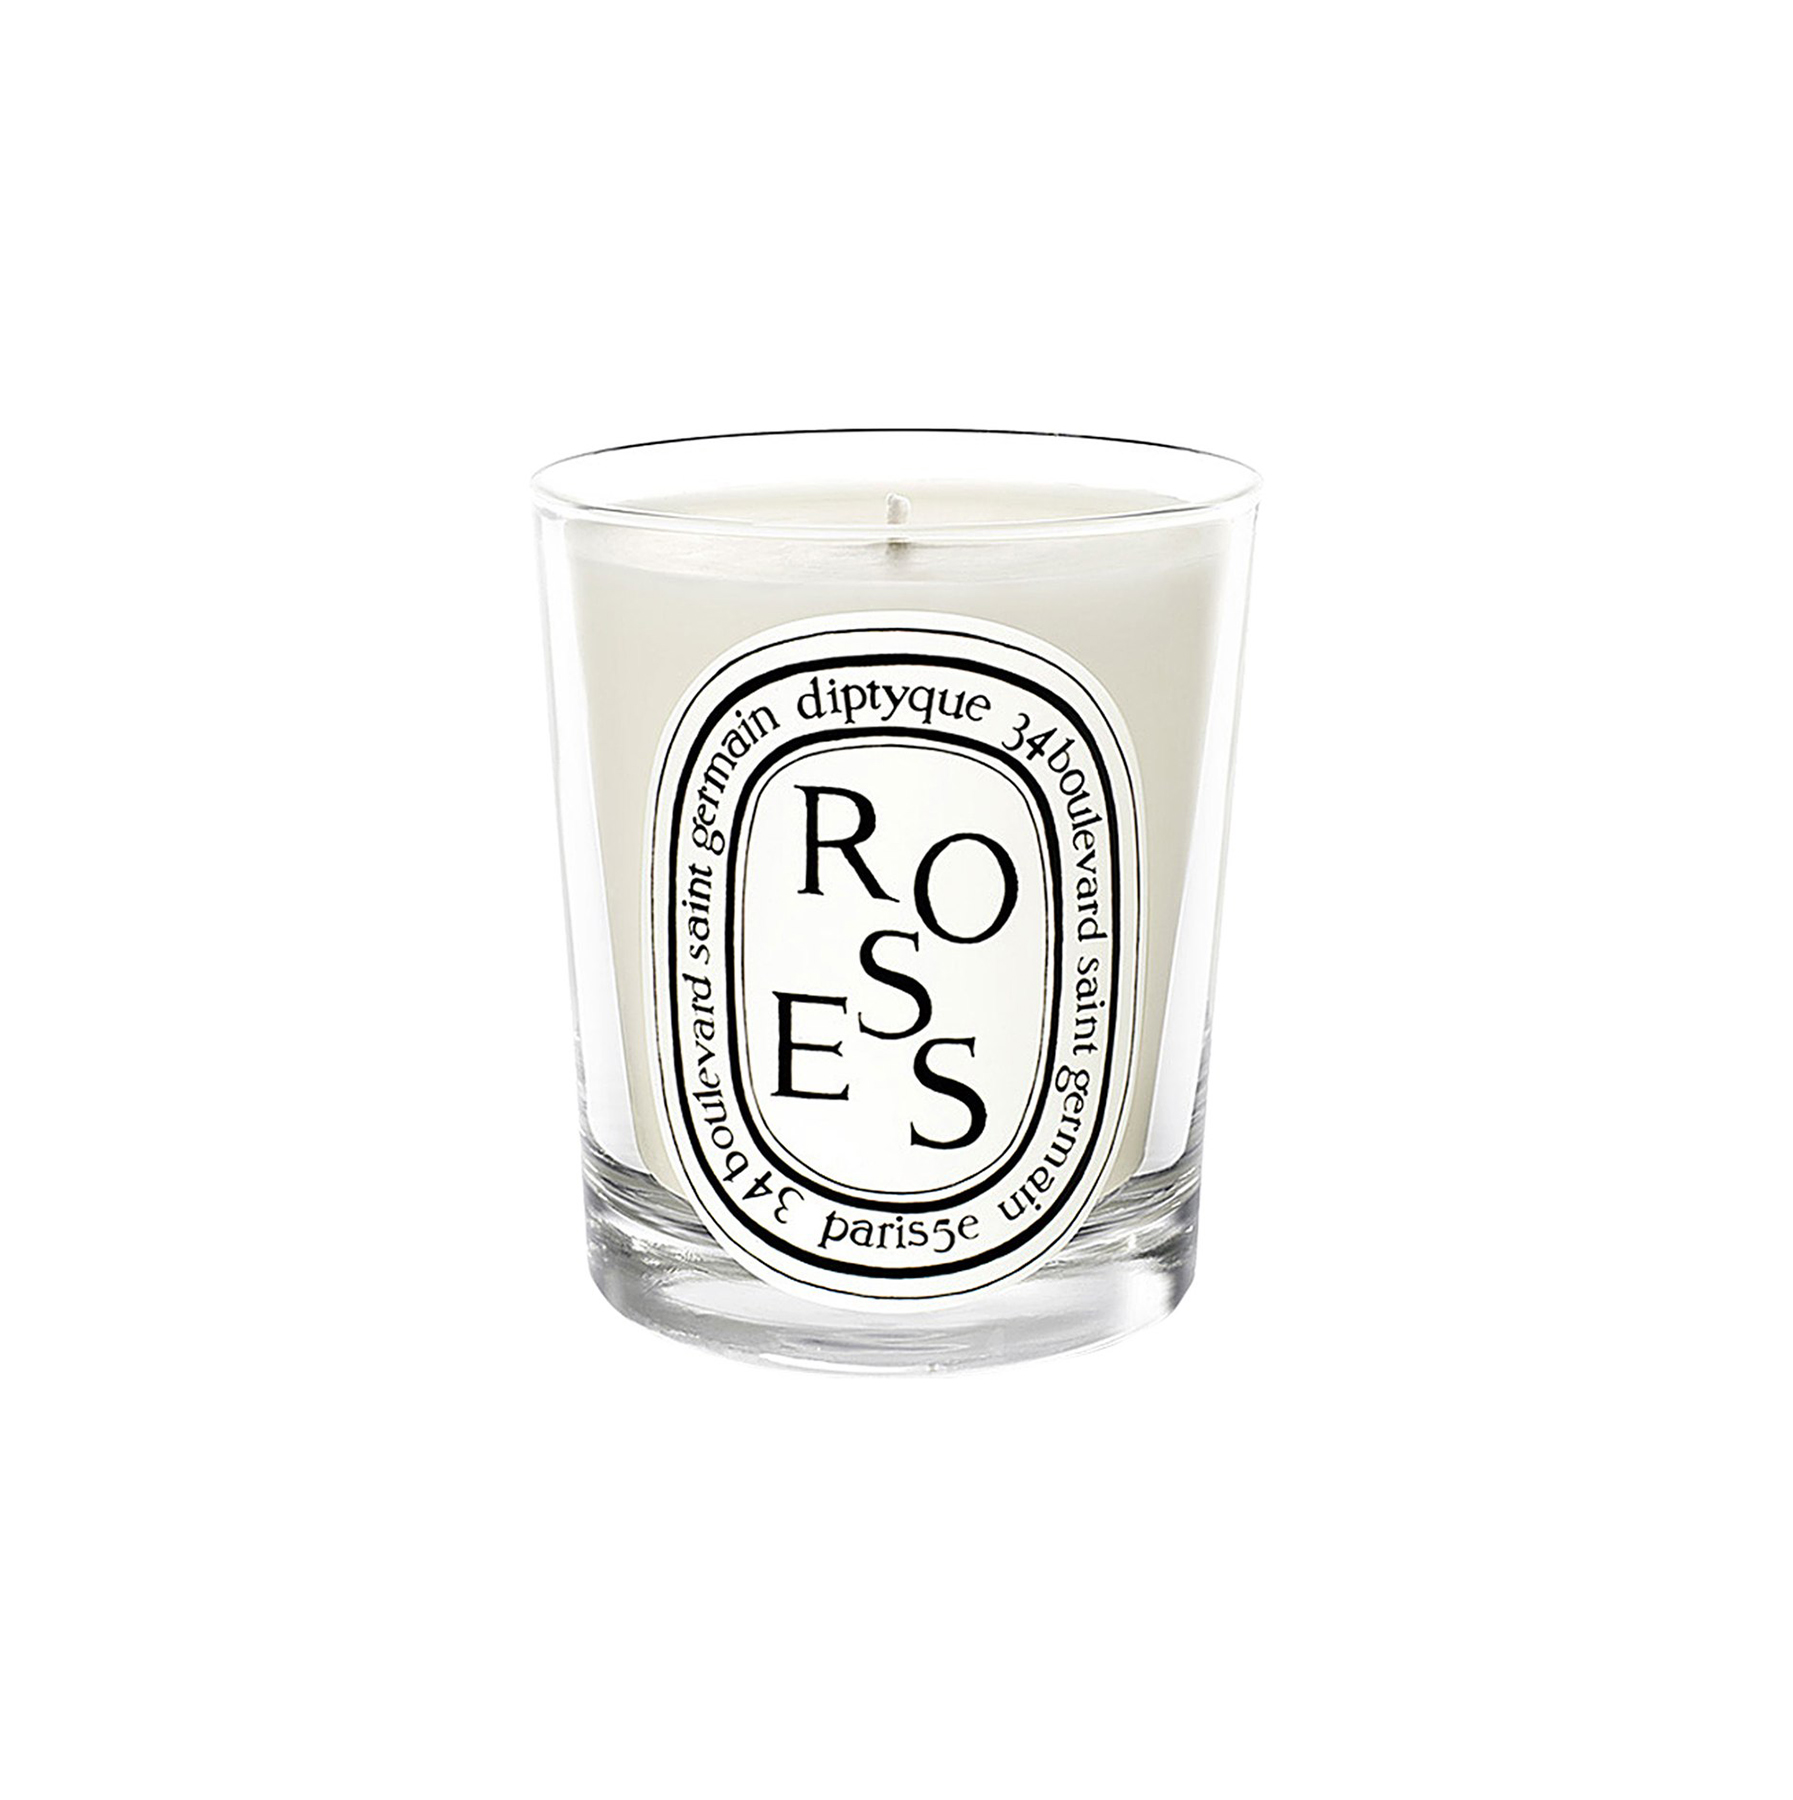 'Roses' Scented Candle